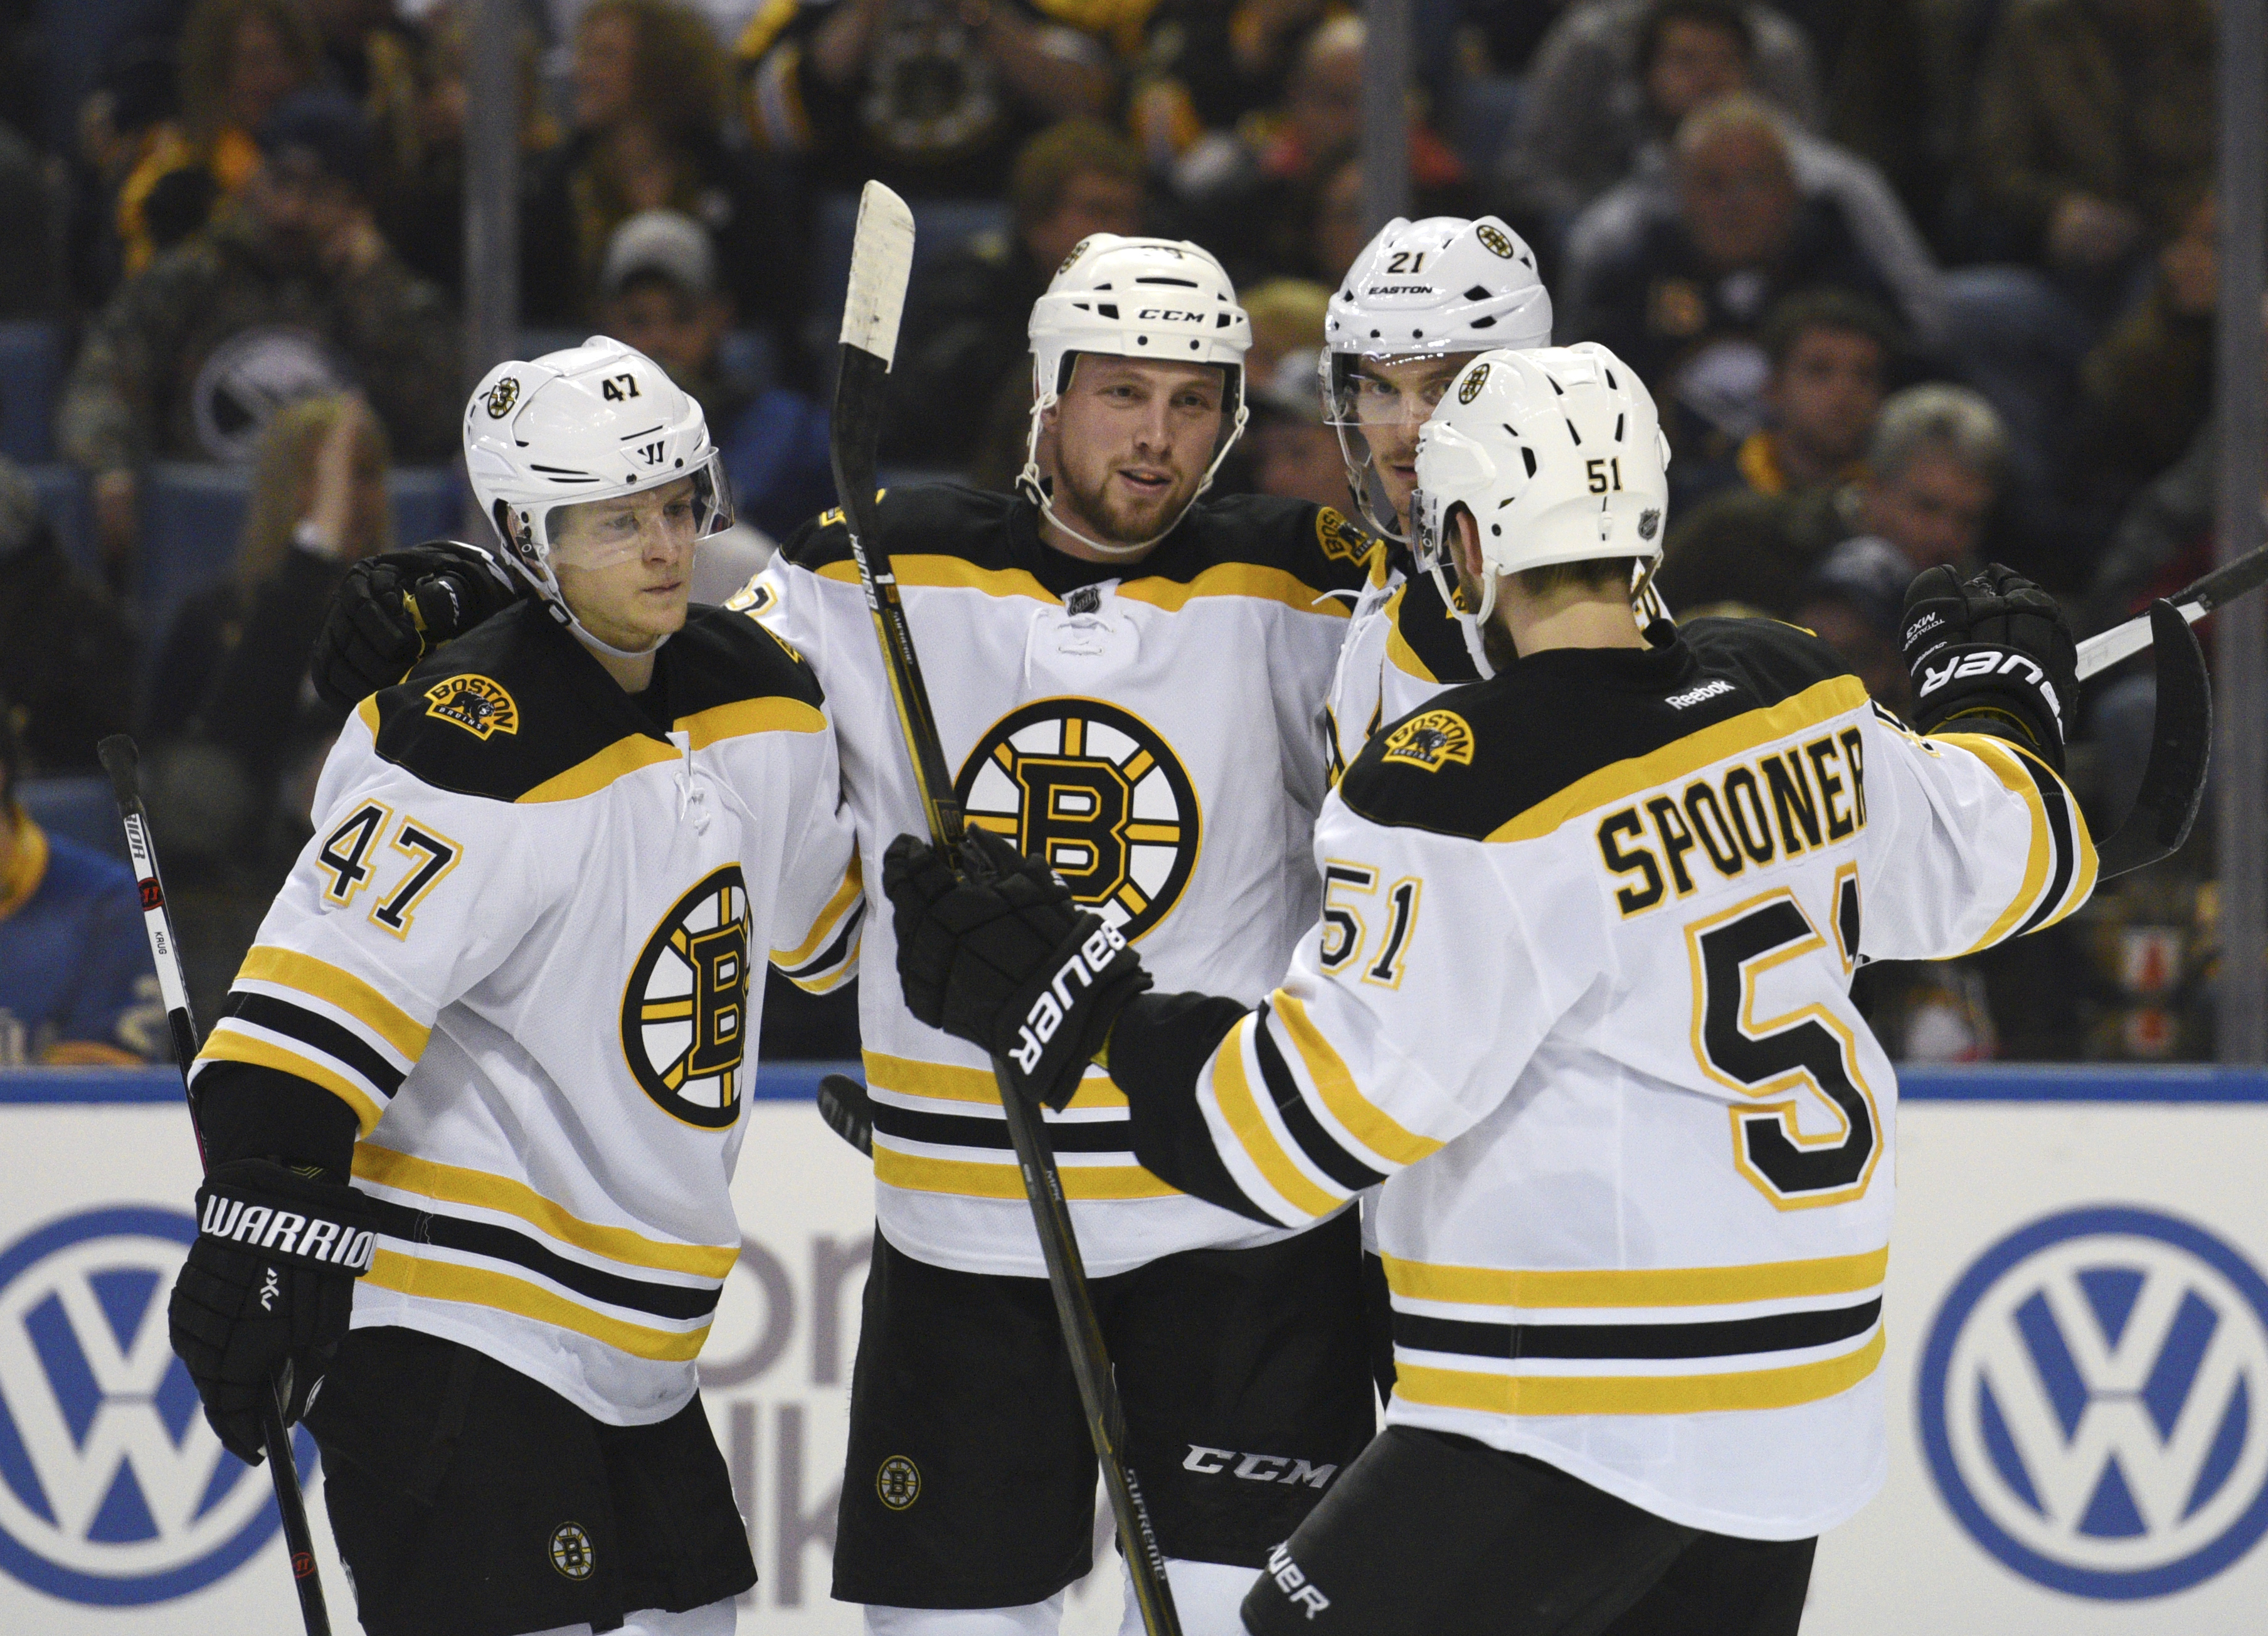 Boston Bruins' Torey Krug (47), Matt Beleskey (39), Loui Ericsson (21) and Ryan Spooner (51) celebrate a goal by Beleskey during the second period of an NHL hockey game against the Buffalo Sabres, Friday, Jan. 15, 2016, in Buffalo, N.Y. (AP Photo/Gary Wie